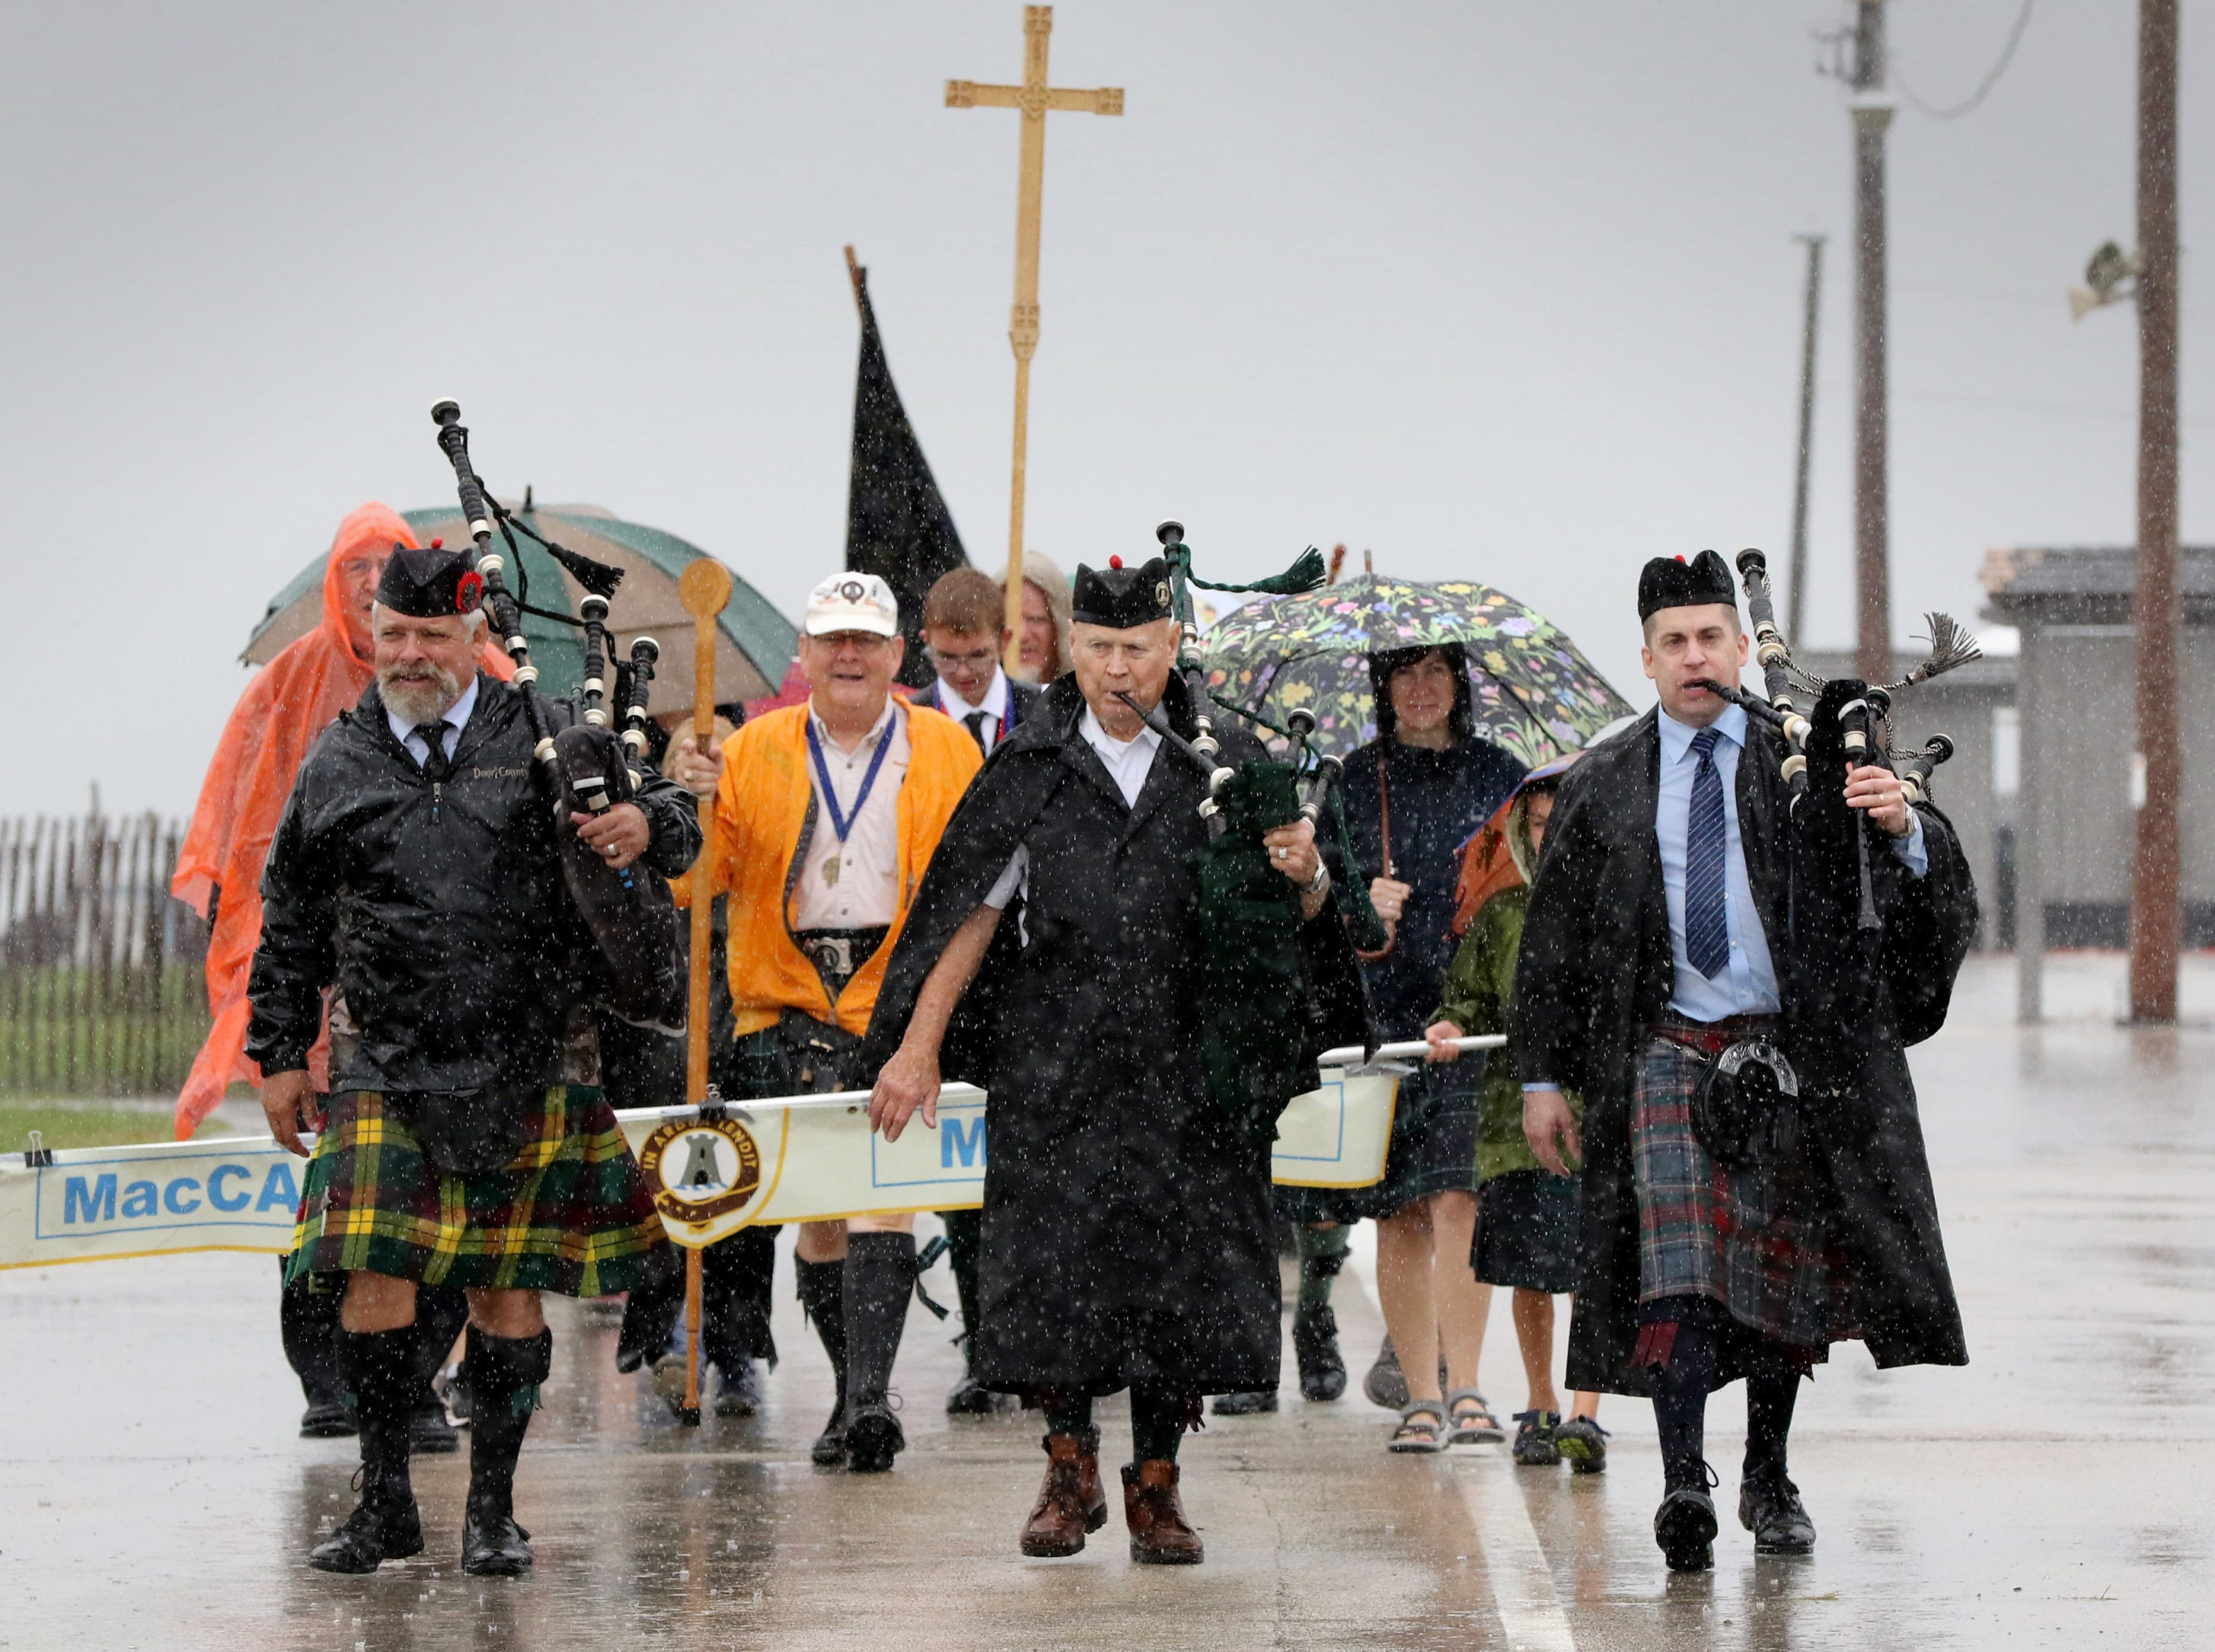 Pipers lead the Parade of the Tartans through the Waukesha County Fairgrounds through the rain during the Wisconsin Highland Games on Sept. 1